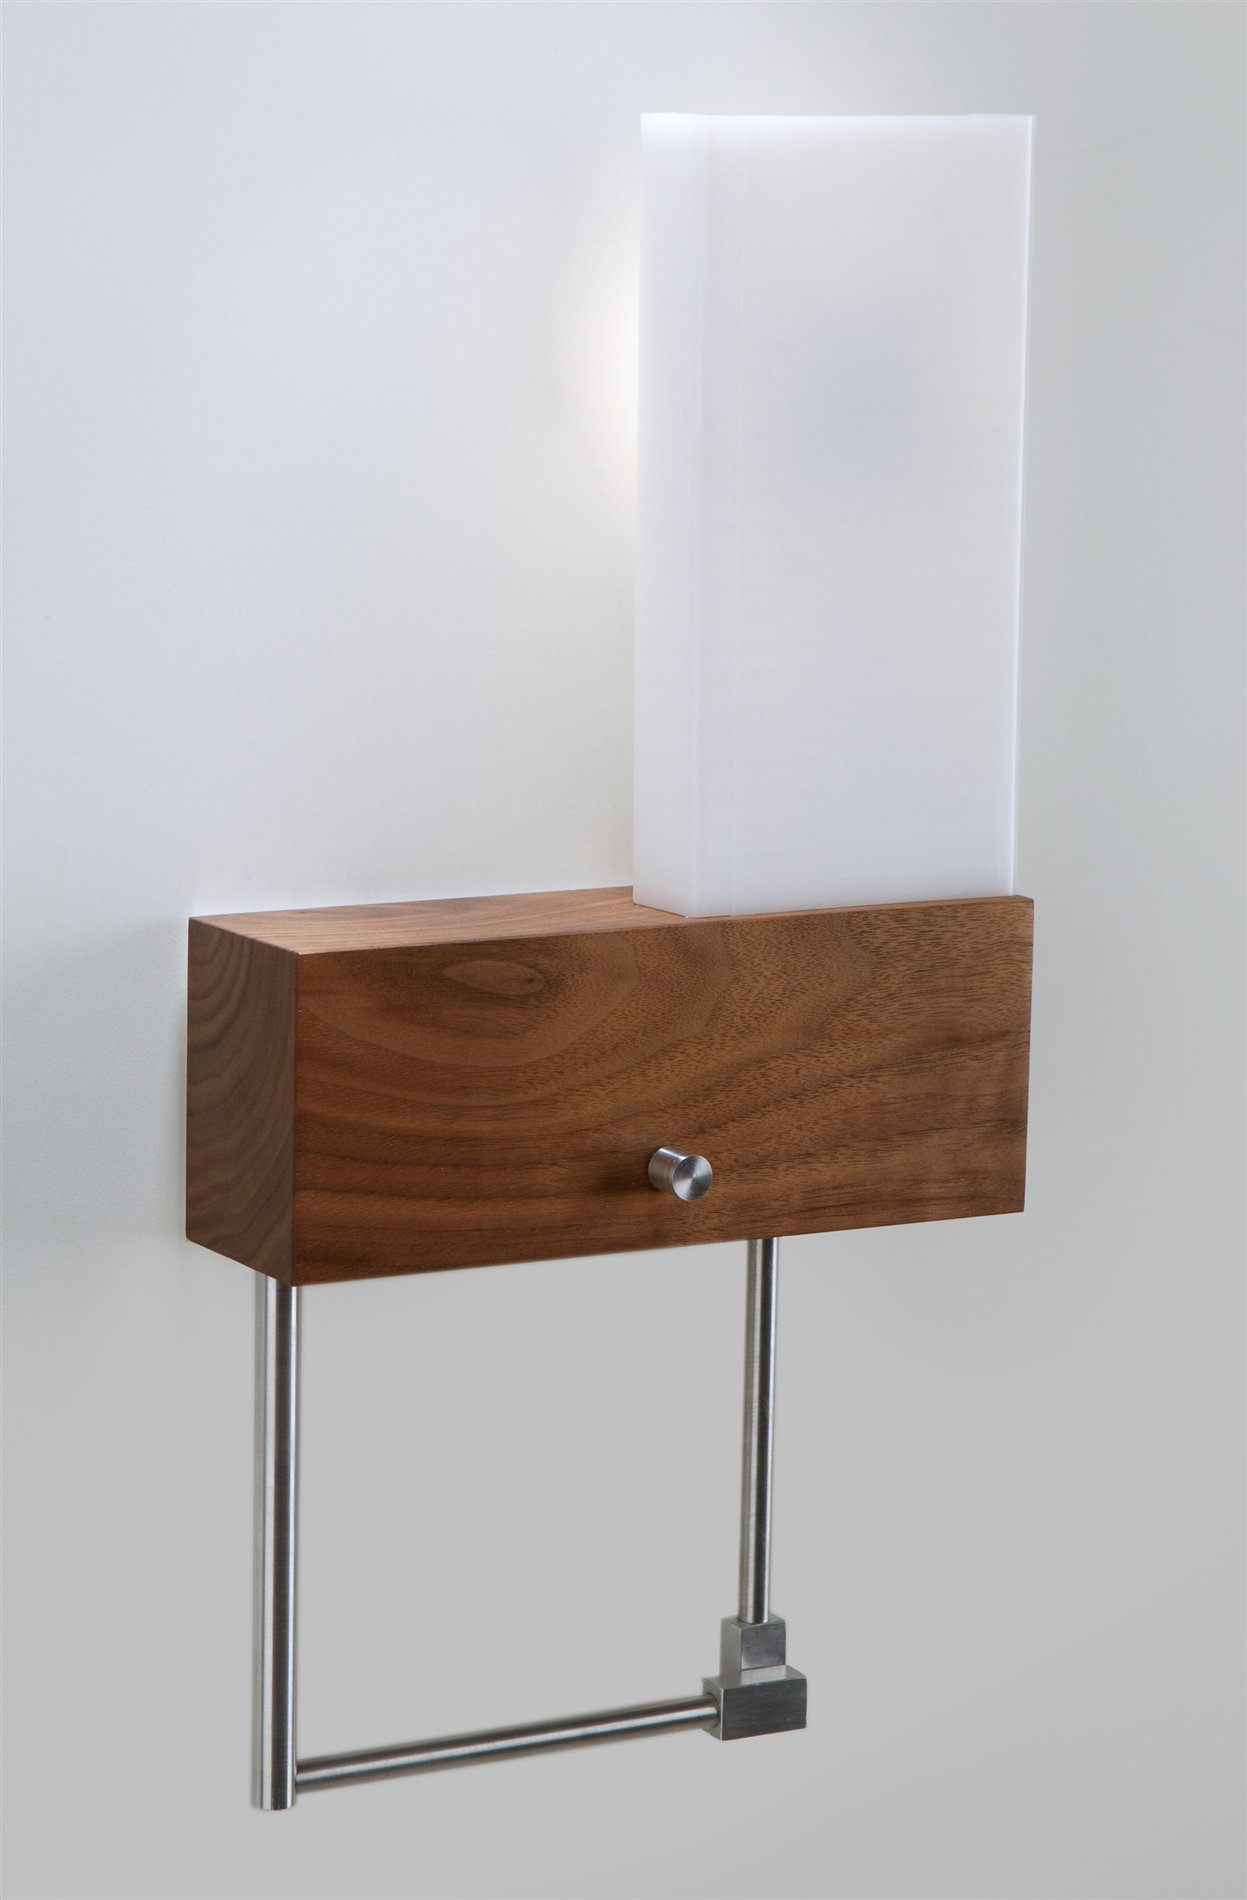 Wall Sconce With Led Reading Light : Cubo LED Contemporary Wall Sconce / Reading Light - Hardwired (Right) - XREC-HR-011-30